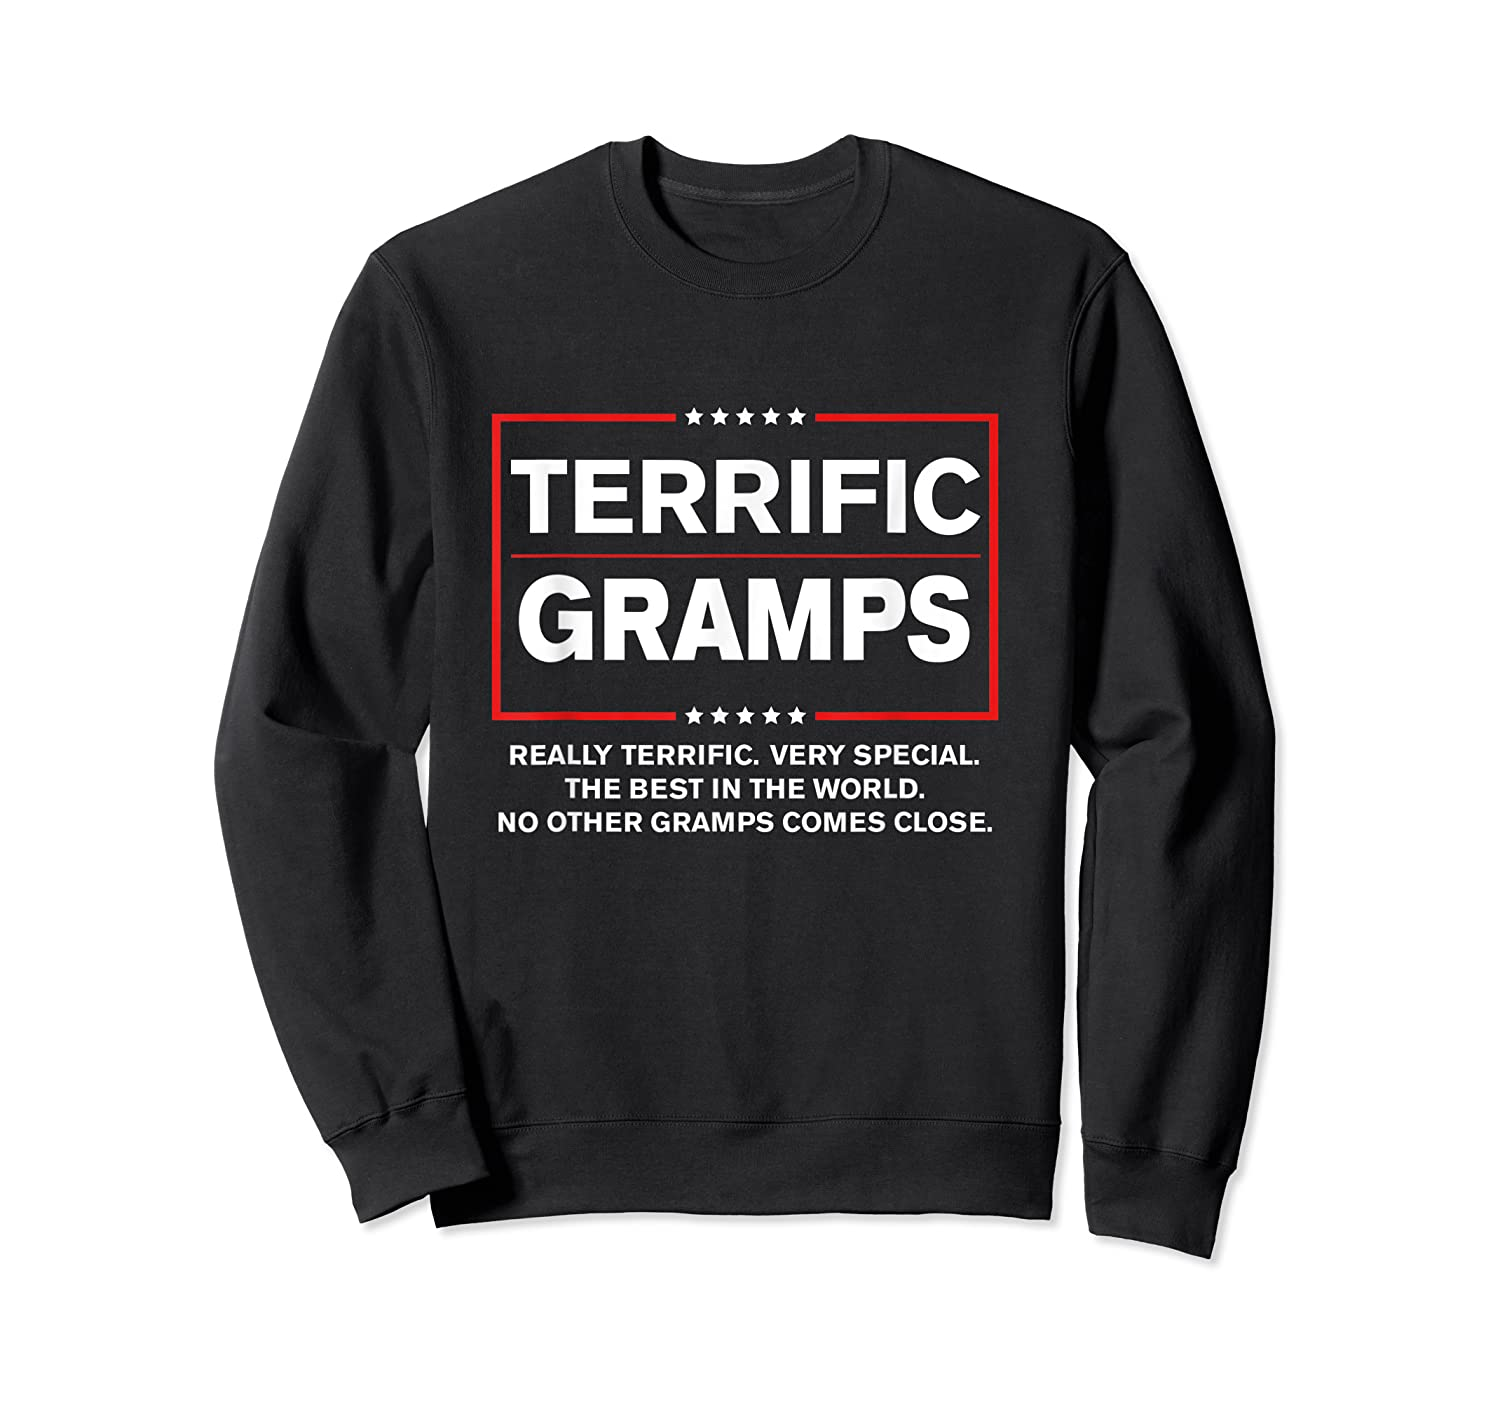 Donald Trump Fathers Day Gift For Gramps Funny Campaign Sign T Shirt Crewneck Sweater